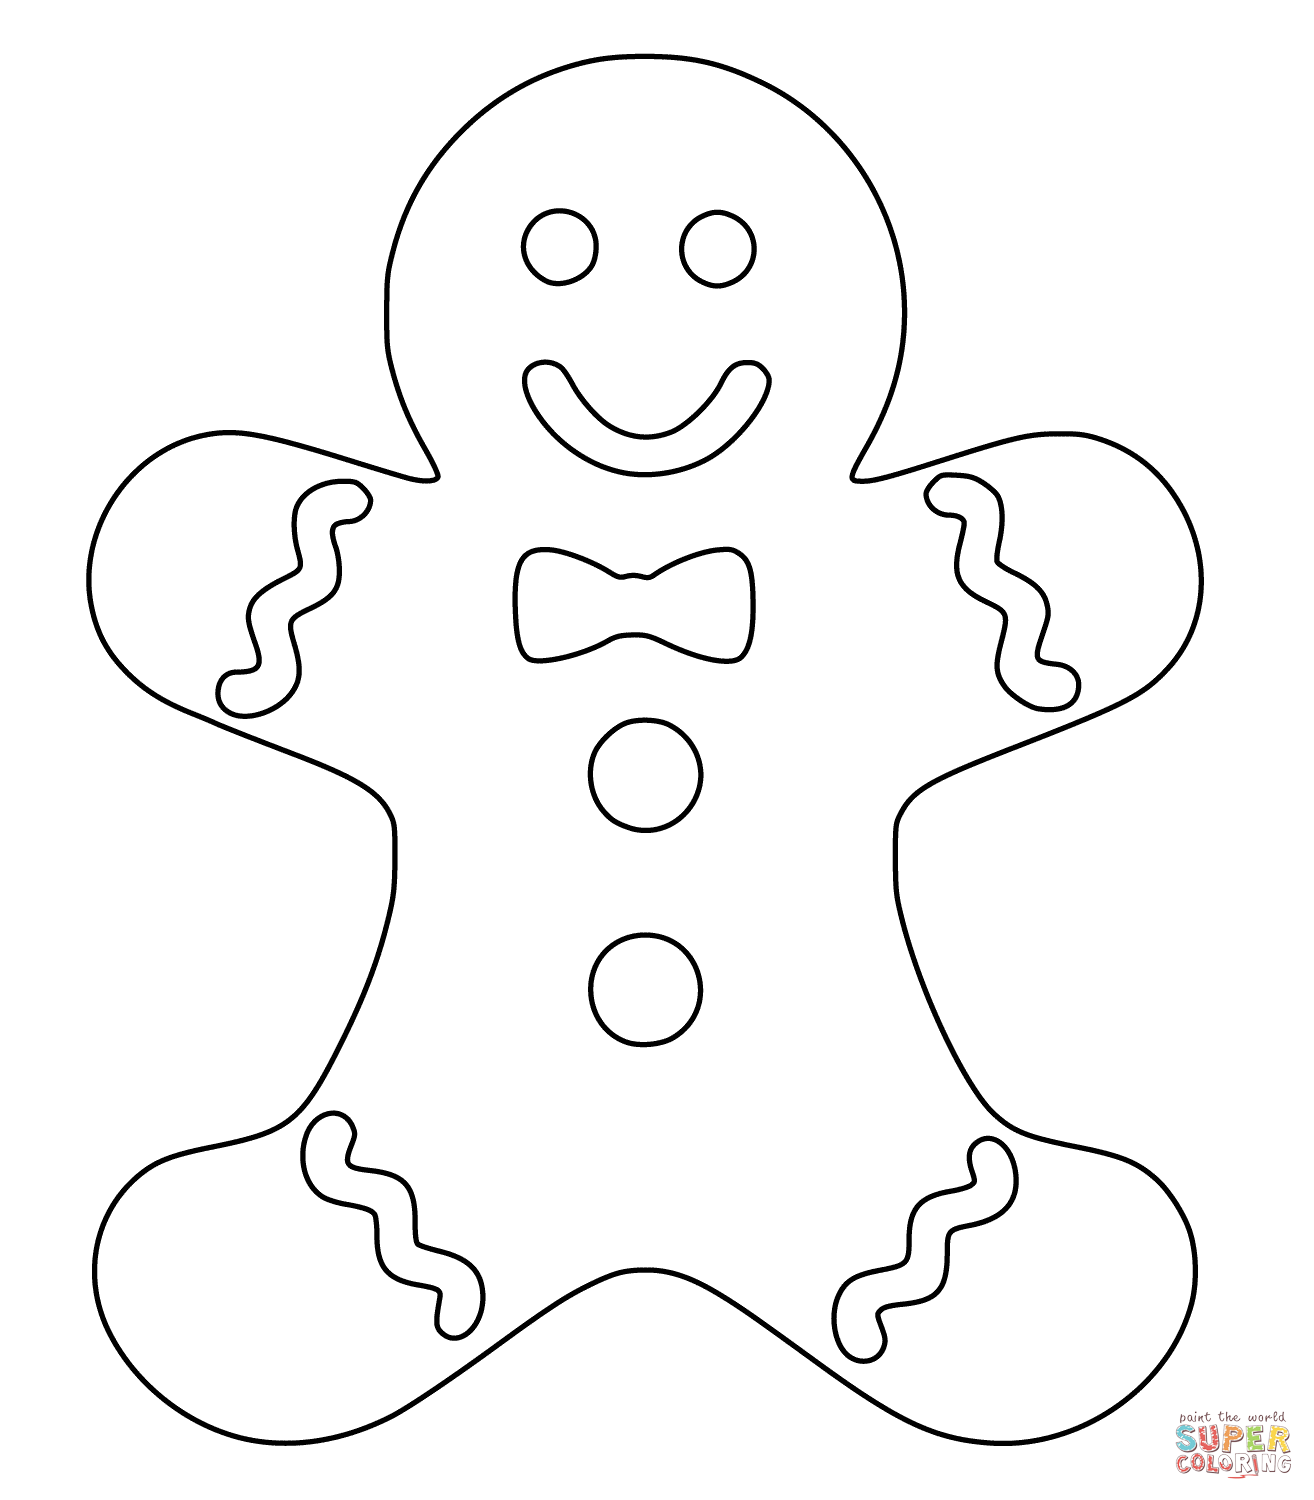 gingerbread coloring pages printable gingerbread house coloring pages for kids pages gingerbread coloring